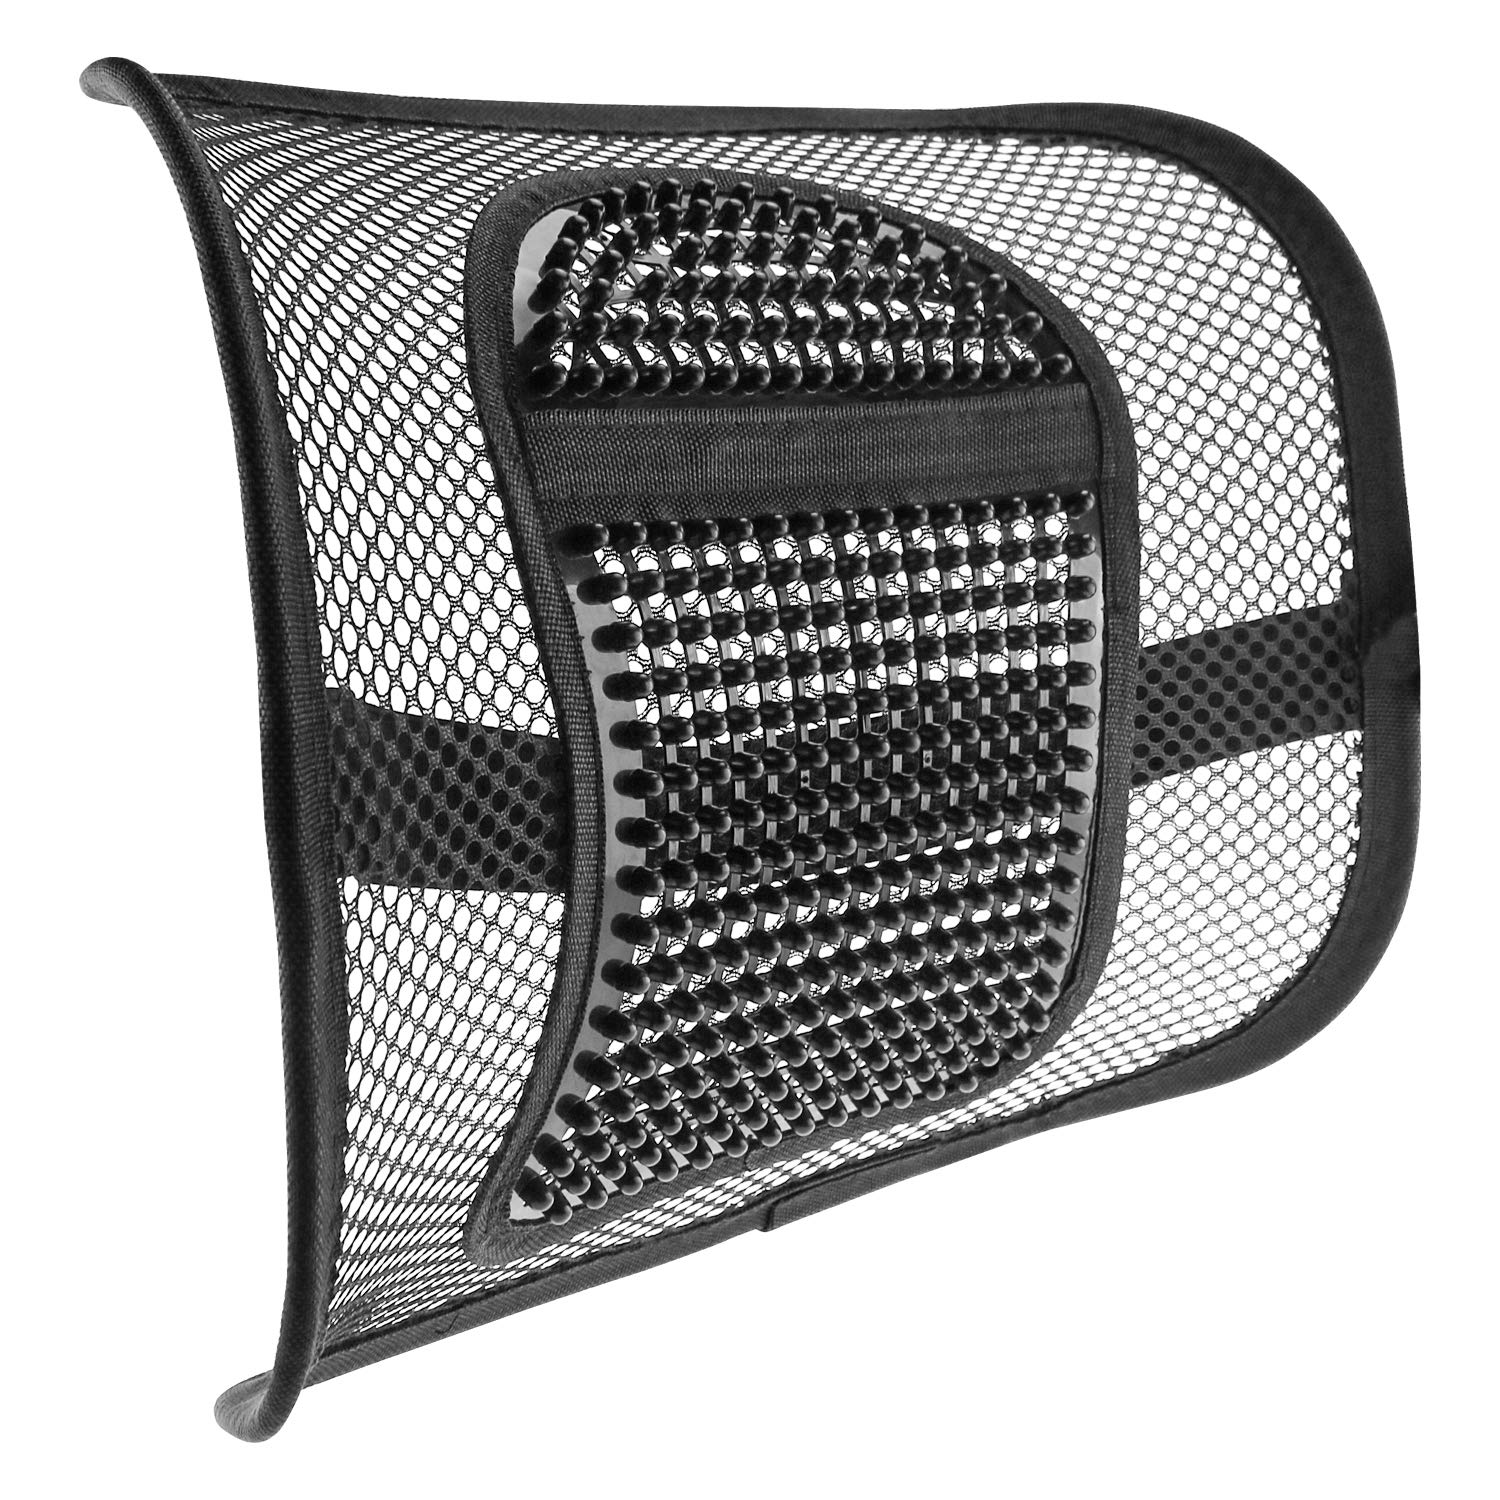 ACVCY Lumbar Mesh Support for Office Chair or Car Seat,Breathable Comfortable Back Support for Office Chair Lumbar Support Cushion for All Types Car Seats Office Chair 12'' x 16'' by ACVCY